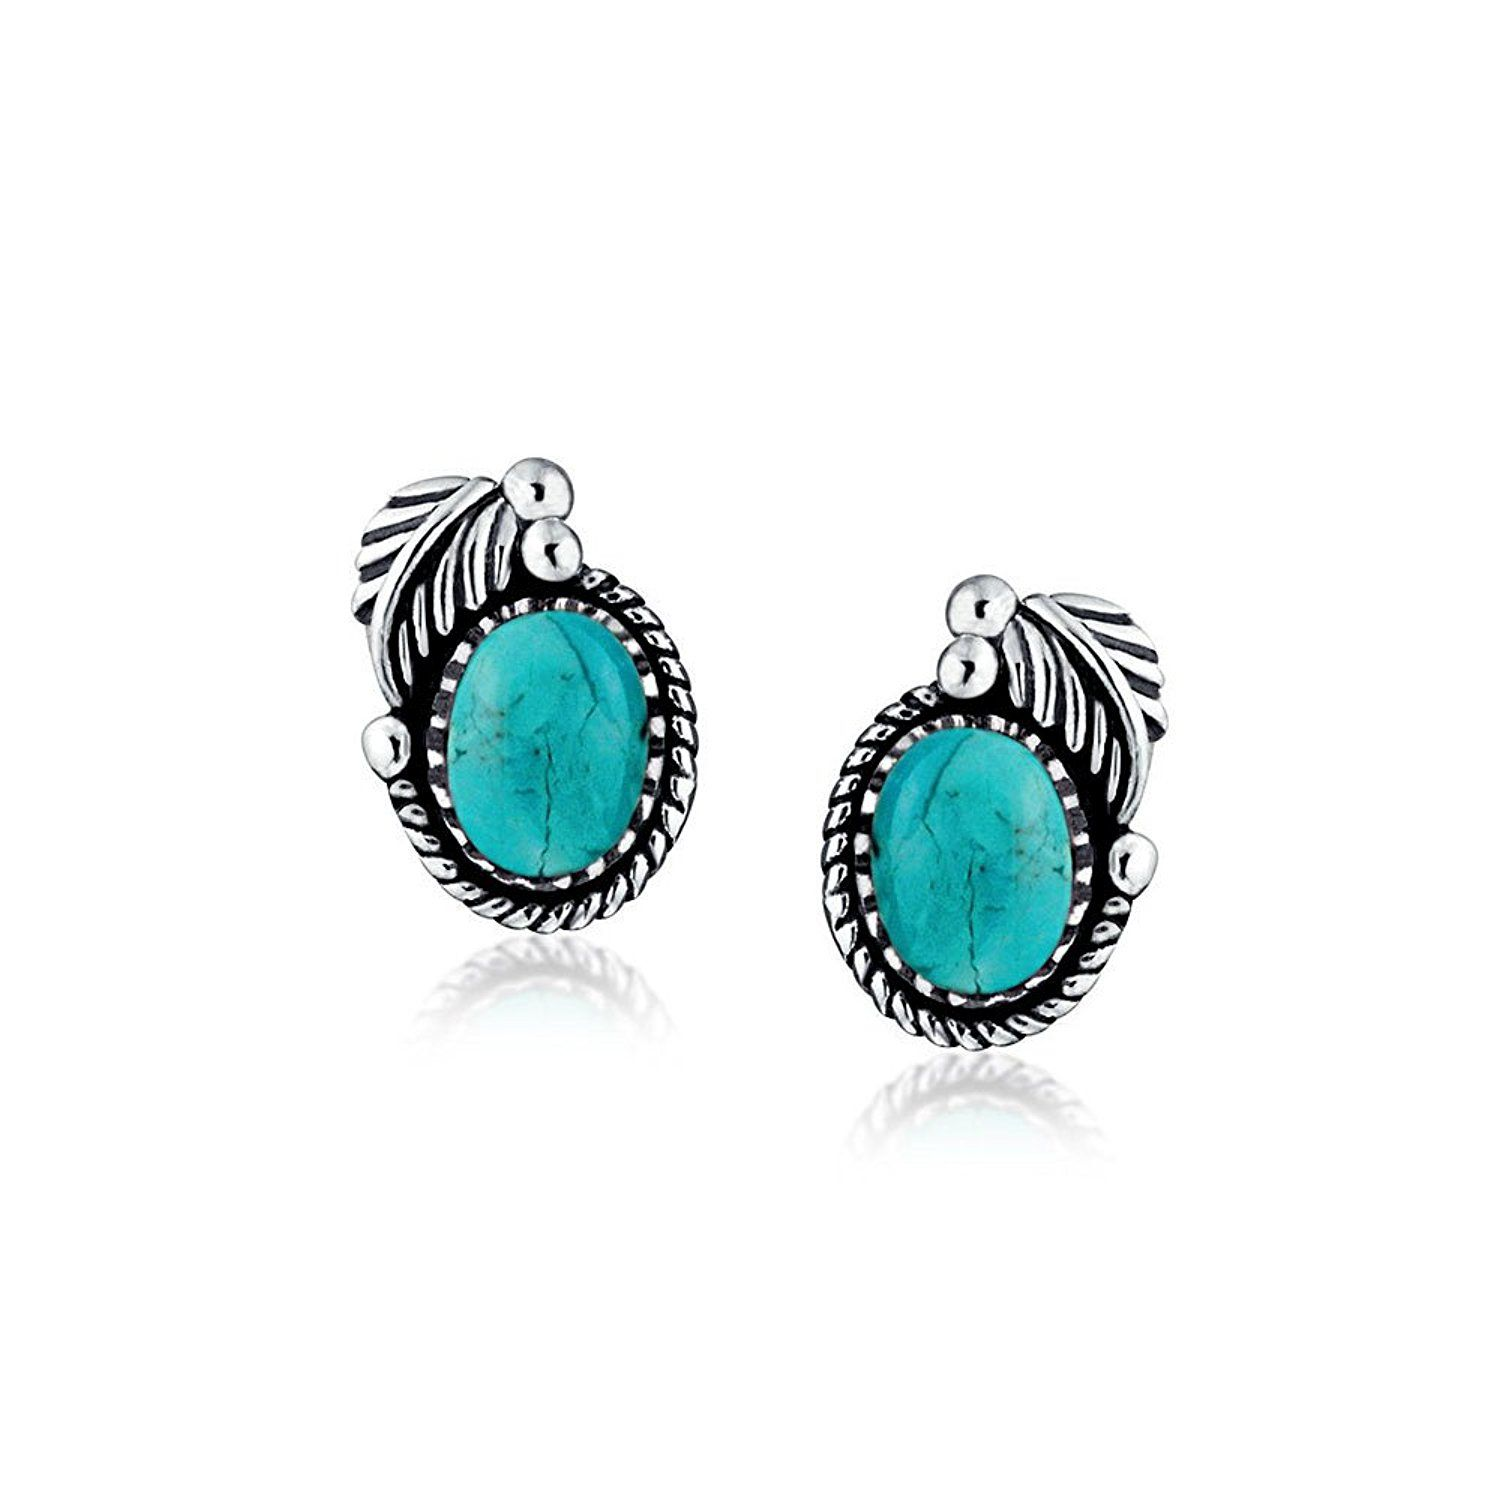 birthstone fair earrings stud the categories image december supporting spring turquoise products